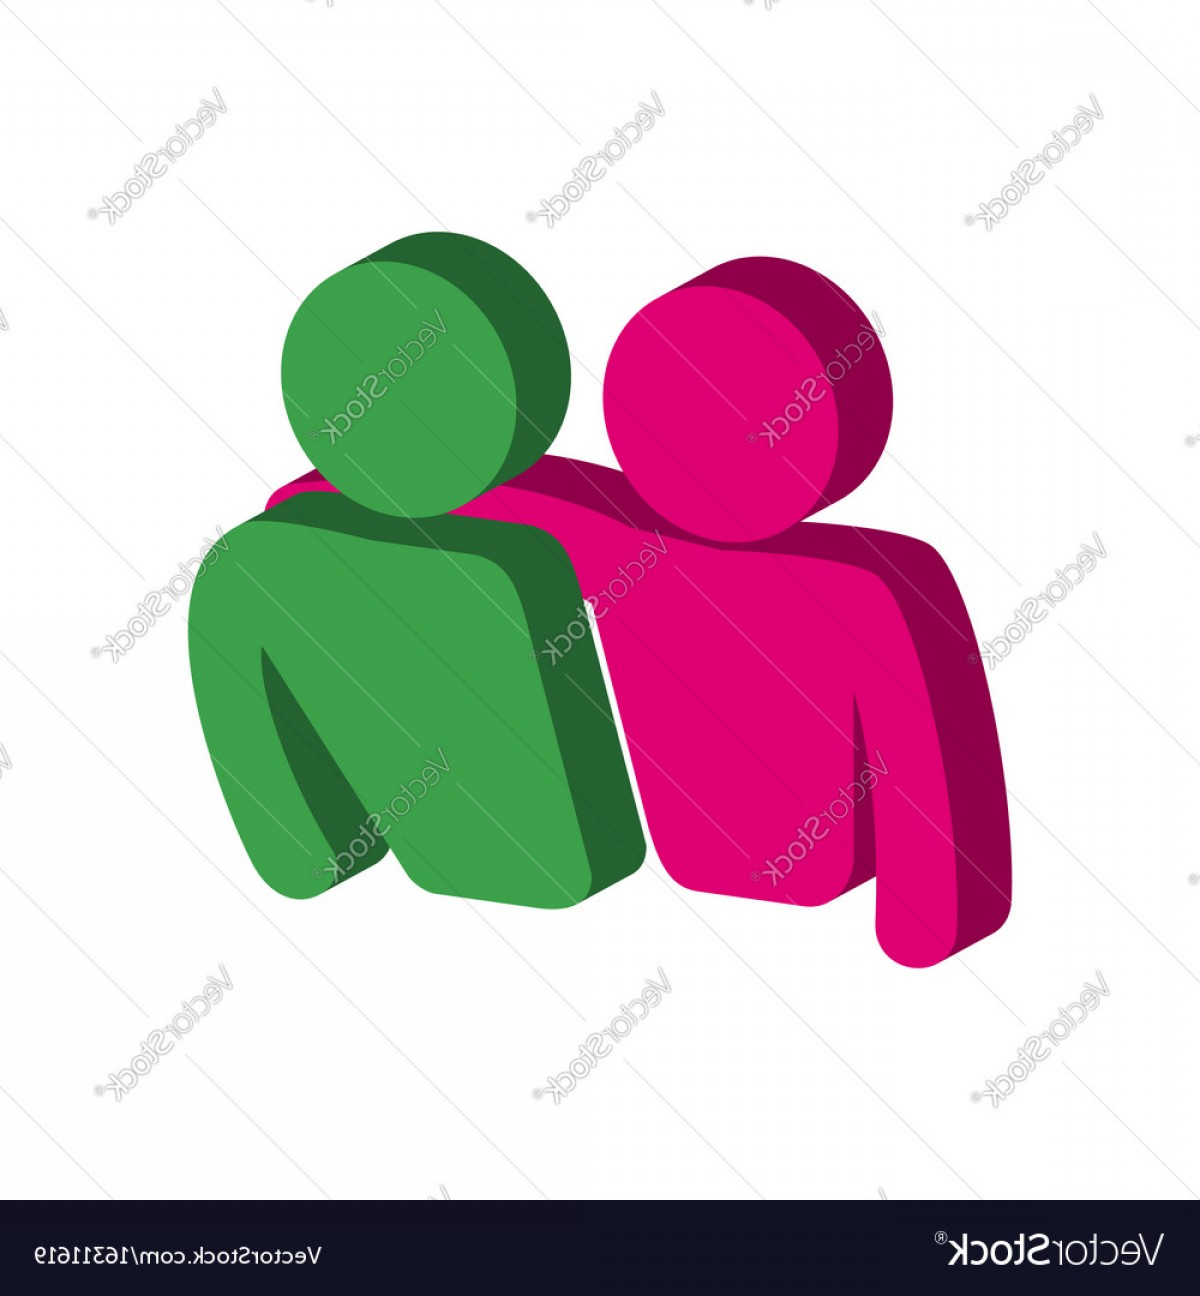 Friendship Symbol Vector: Friends Friendship Symbol Flat Isometric Icon Or Vector